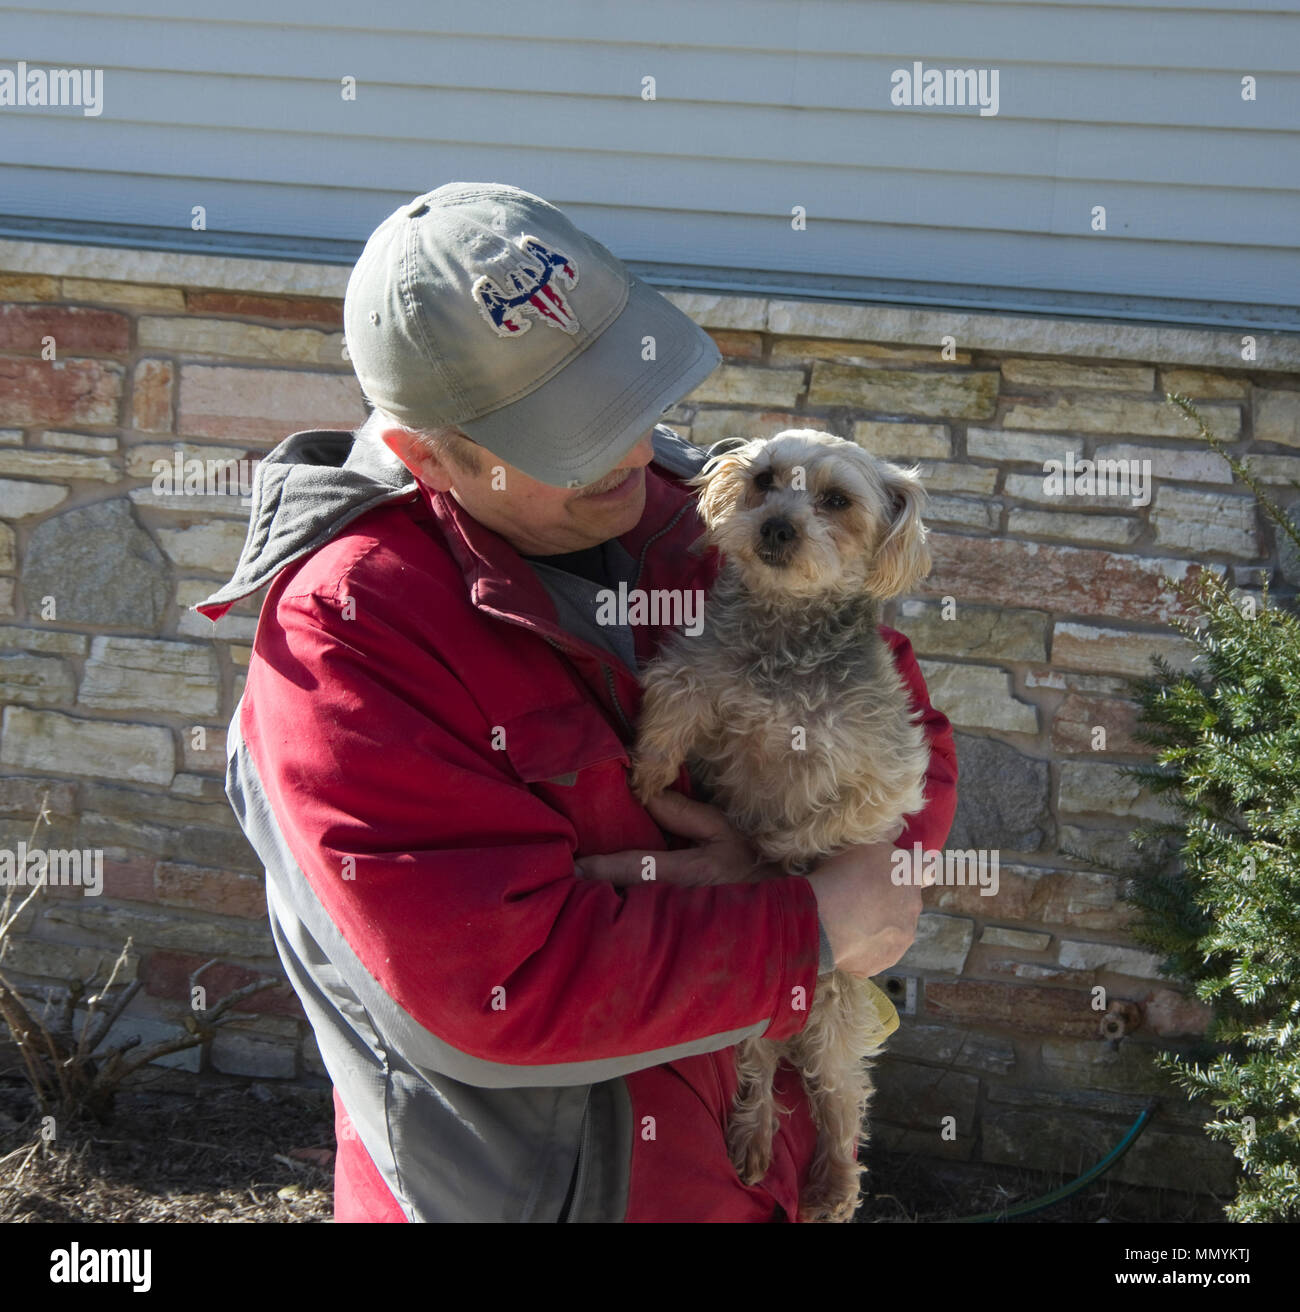 Smiling man holding Yorkshire Terrier dog, Canis lupus familiaris Stock Photo